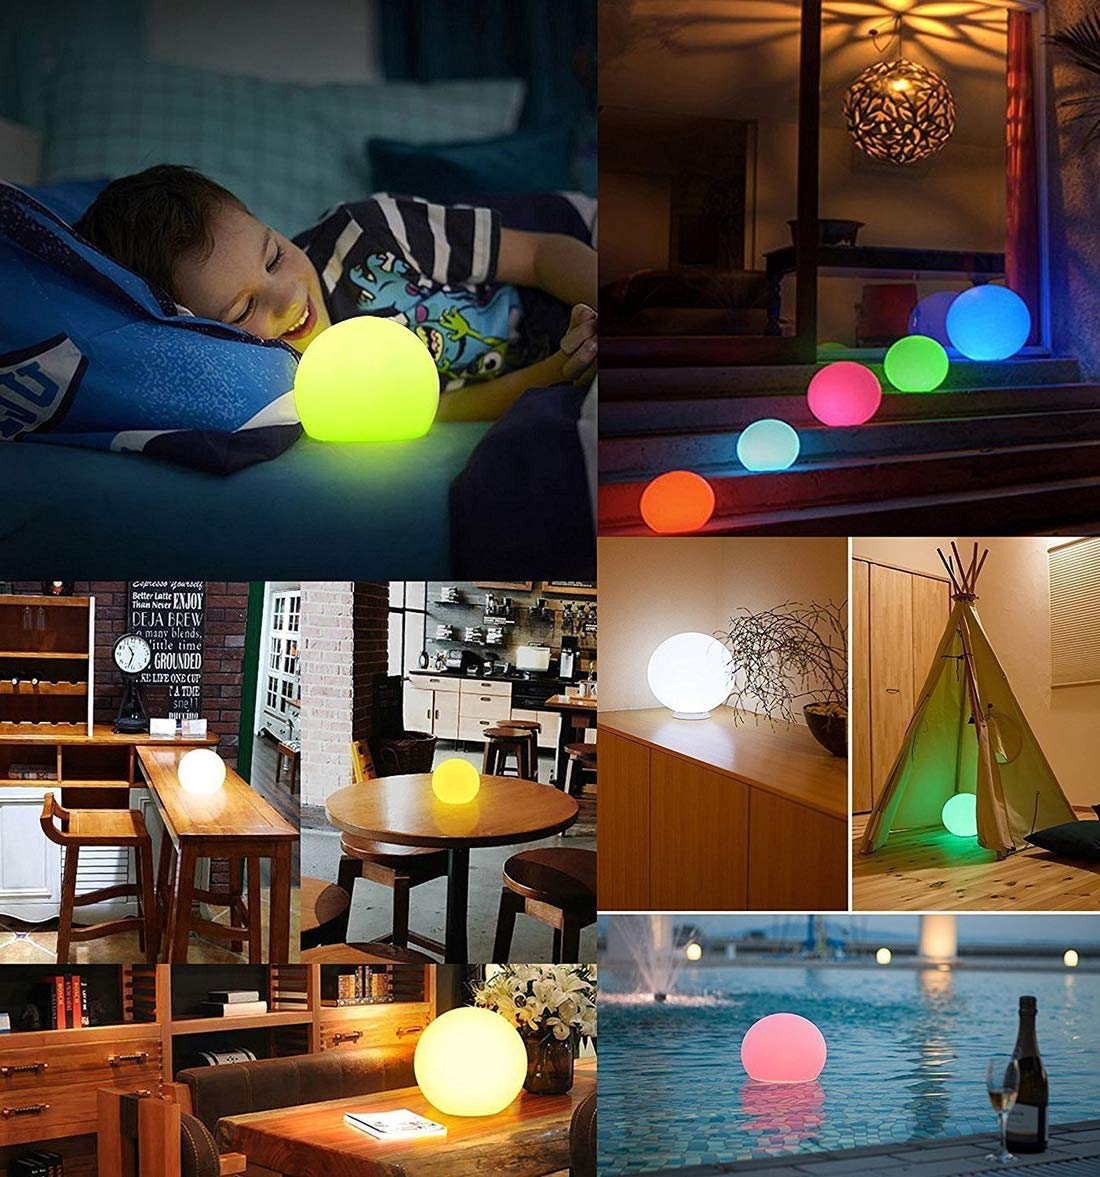 AbbottoKaylan RGB Color-Changing LED Light Ball with Remote Rechargeable Kids Night Light Mood Lamp 16 Dimmable Colors & 4 Modes Ideal for Kids Bedroom Garden Pool Party Decoration (4.7'') by AbbottoKaylan (Image #5)